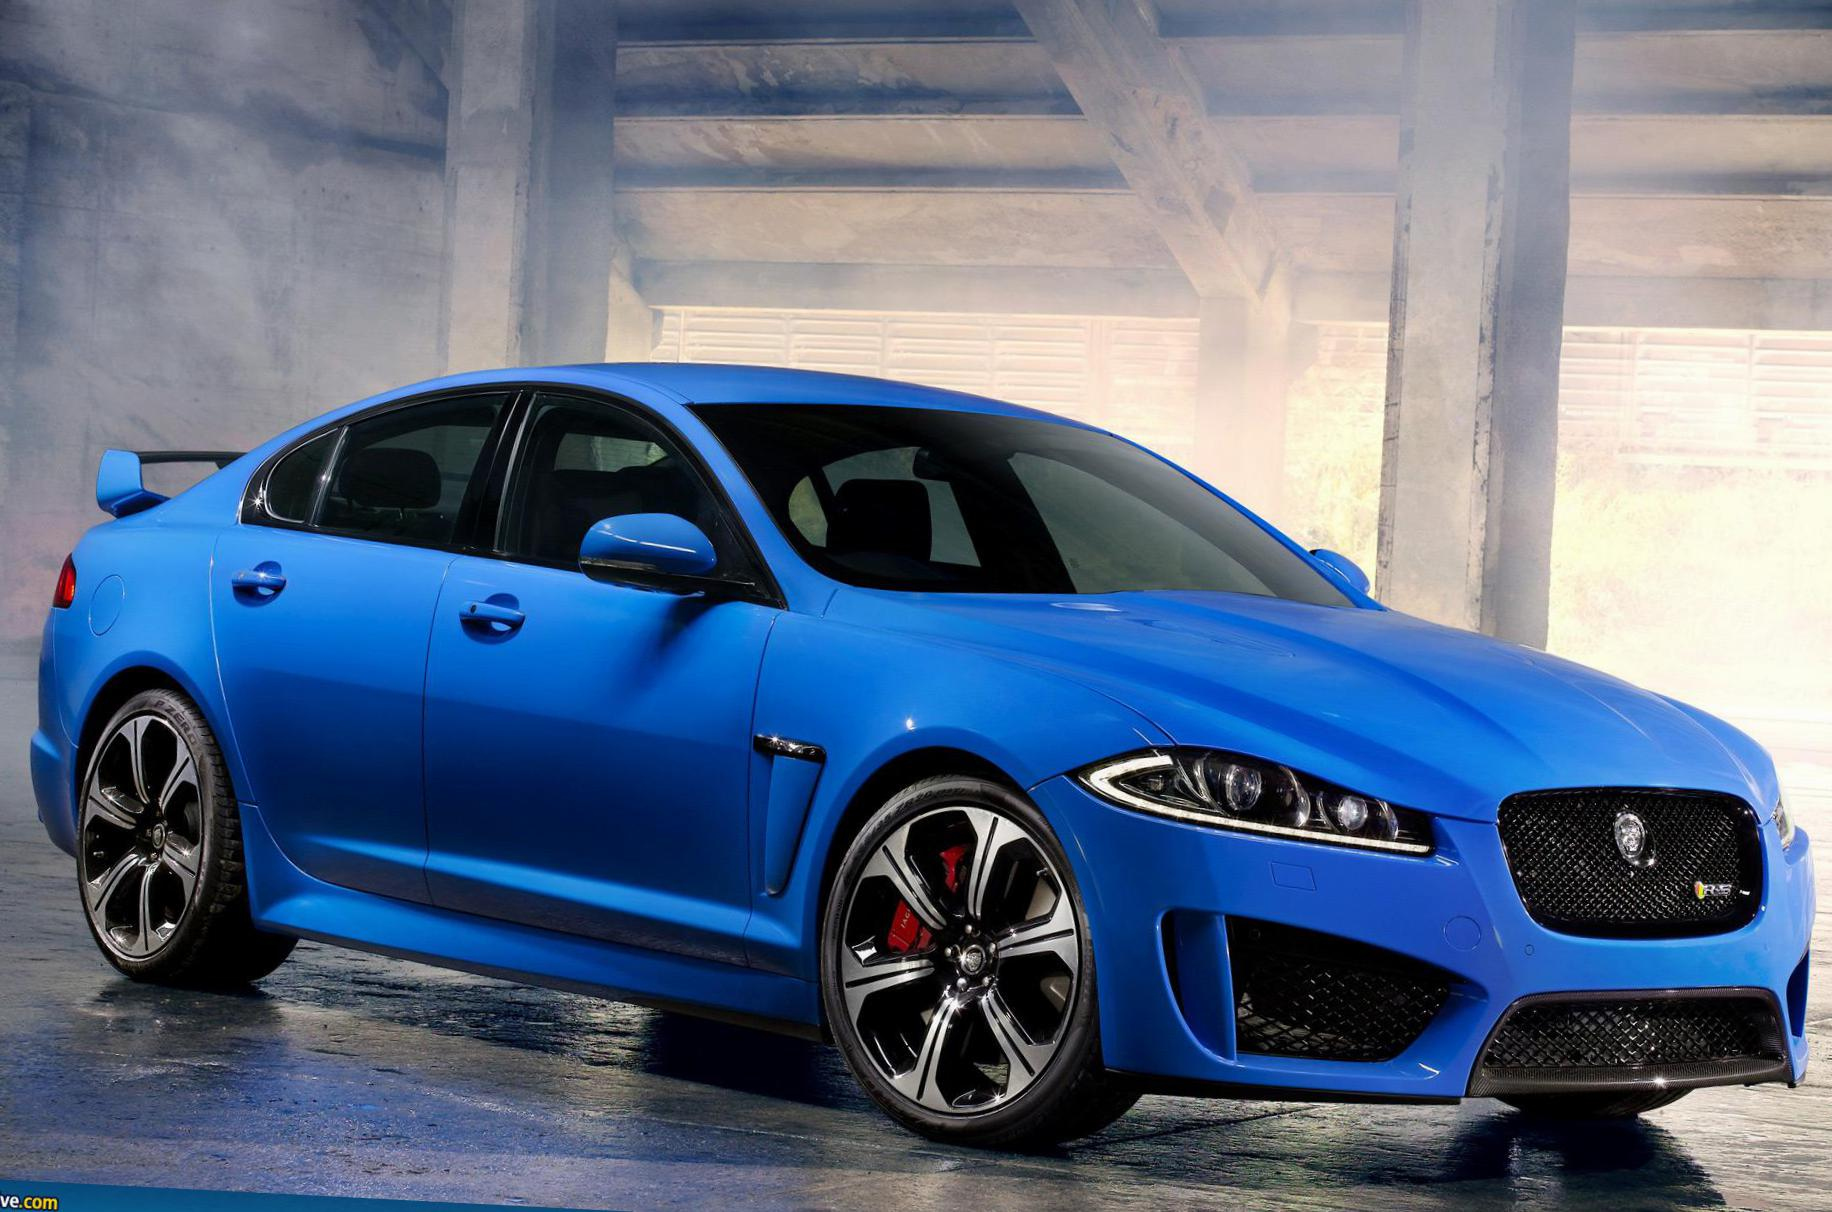 XFR-S Jaguar spec 2010